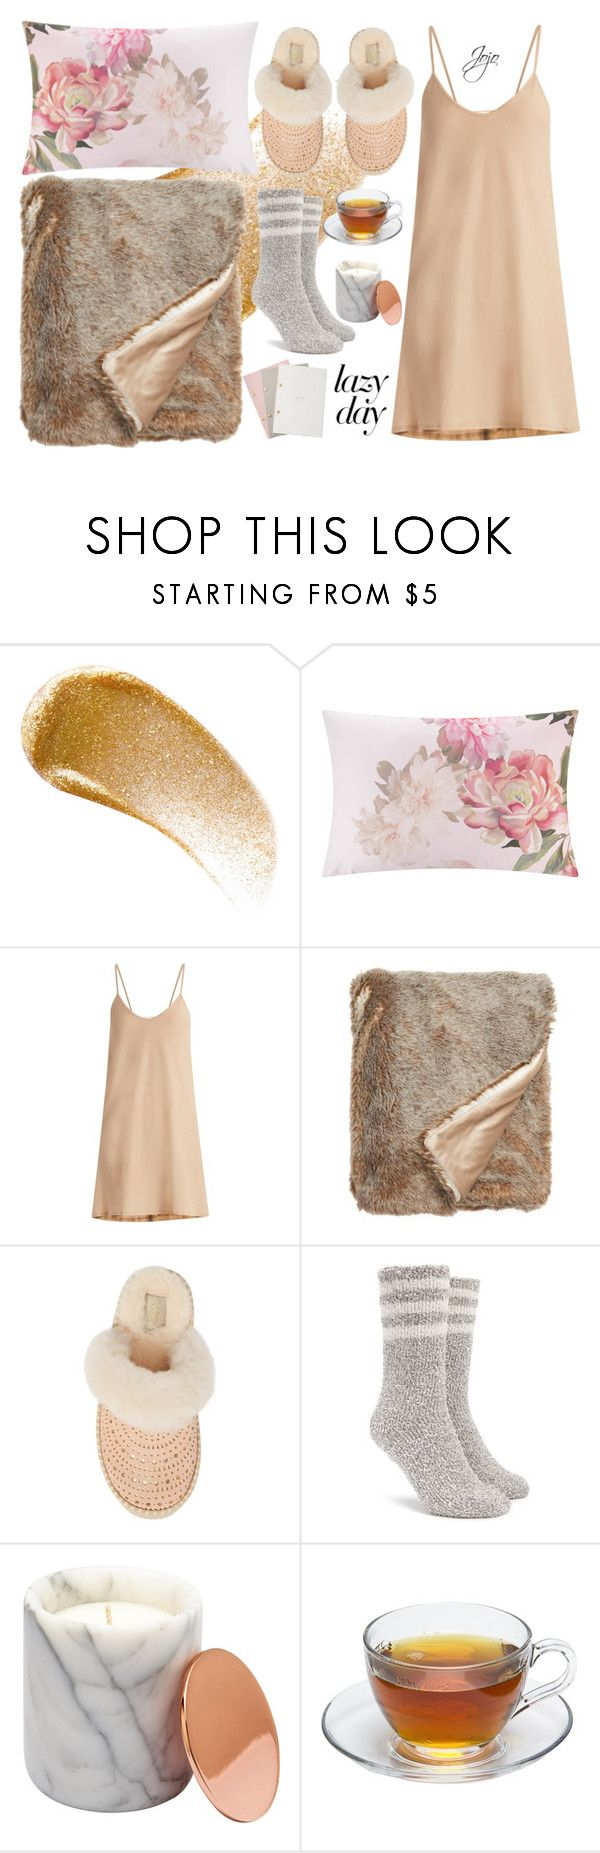 """""""Lazy Champagne"""" by jrpsketch on Polyvore featuring BBrowBar, Ted Baker, Skin, Nordstrom, UGG, Forever 21 and StudioSarah"""